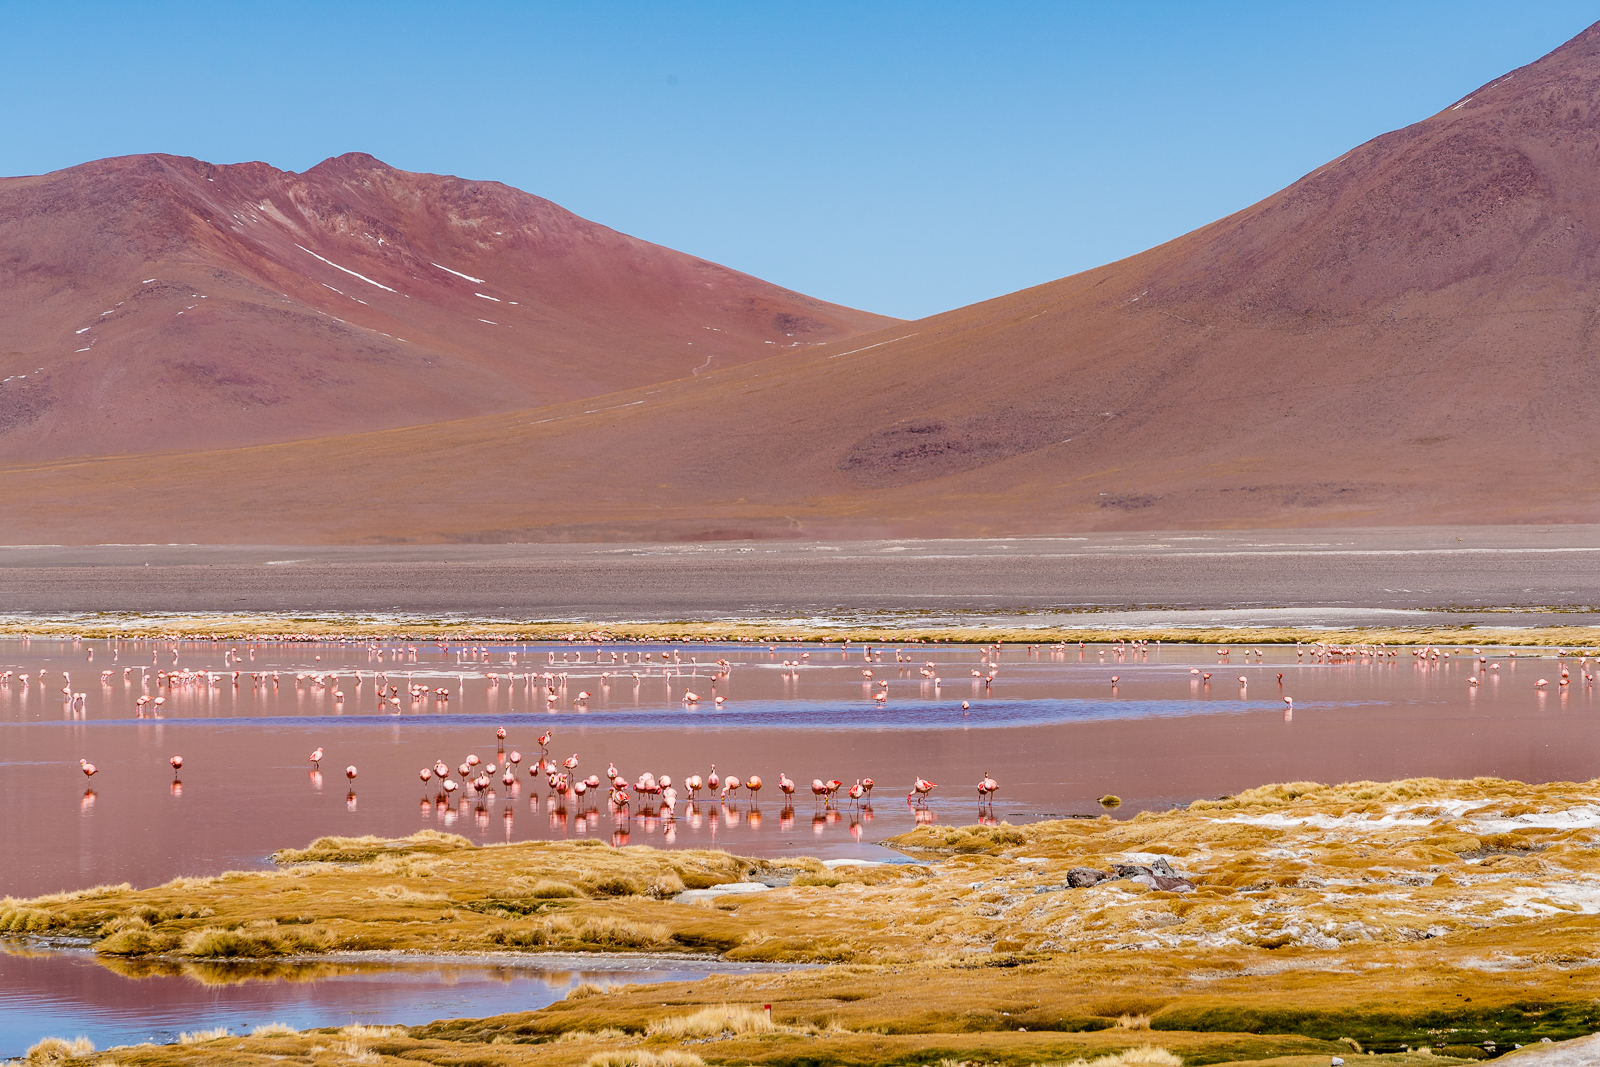 Laguna Colorada with its pink water and flamingos